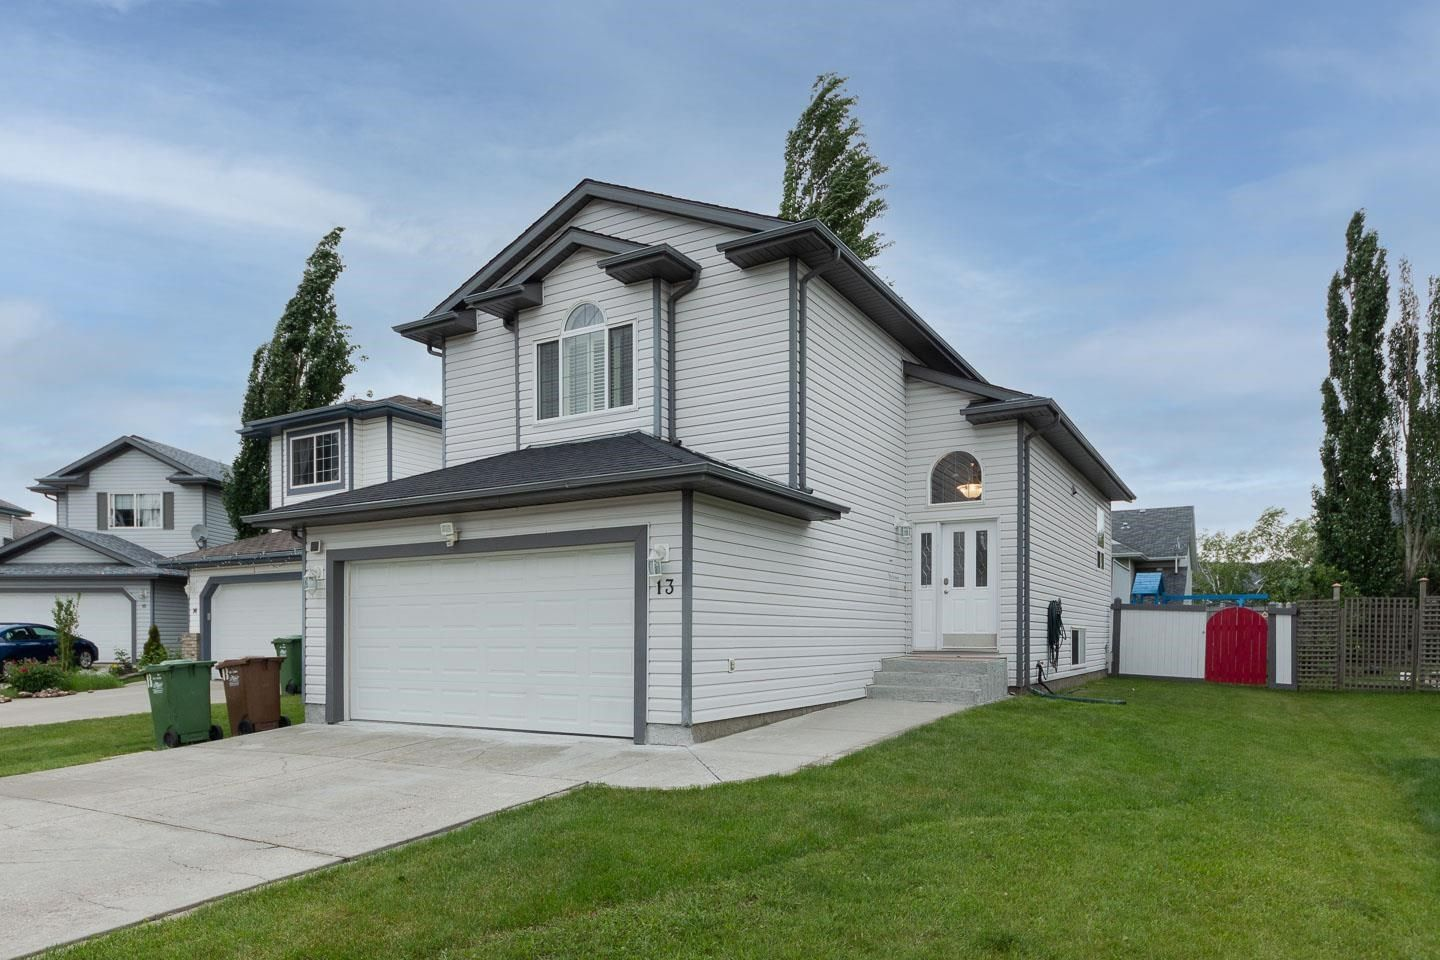 Main Photo: 13 ELBOW Place: St. Albert House for sale : MLS®# E4264102